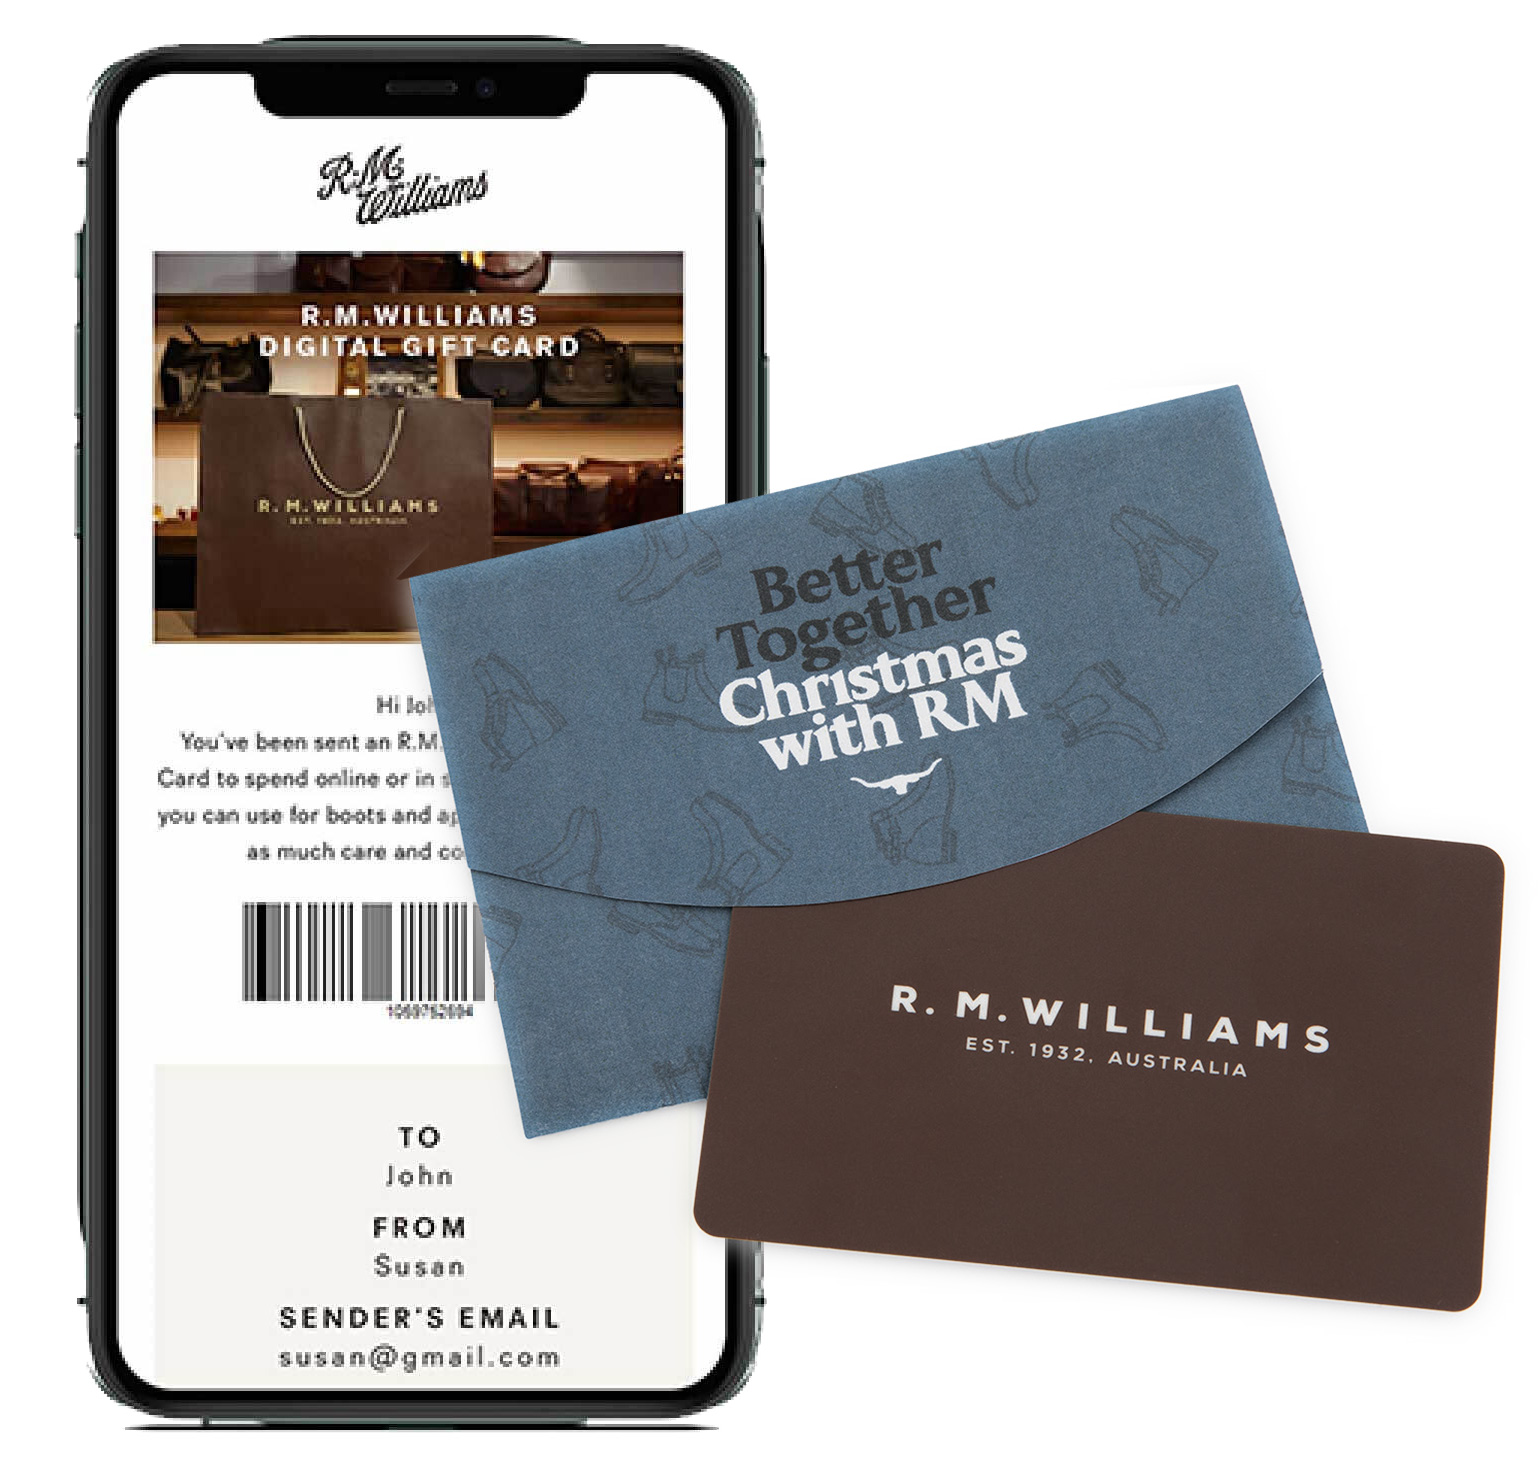 R.M.Williams Christmas Shop Gift Cards